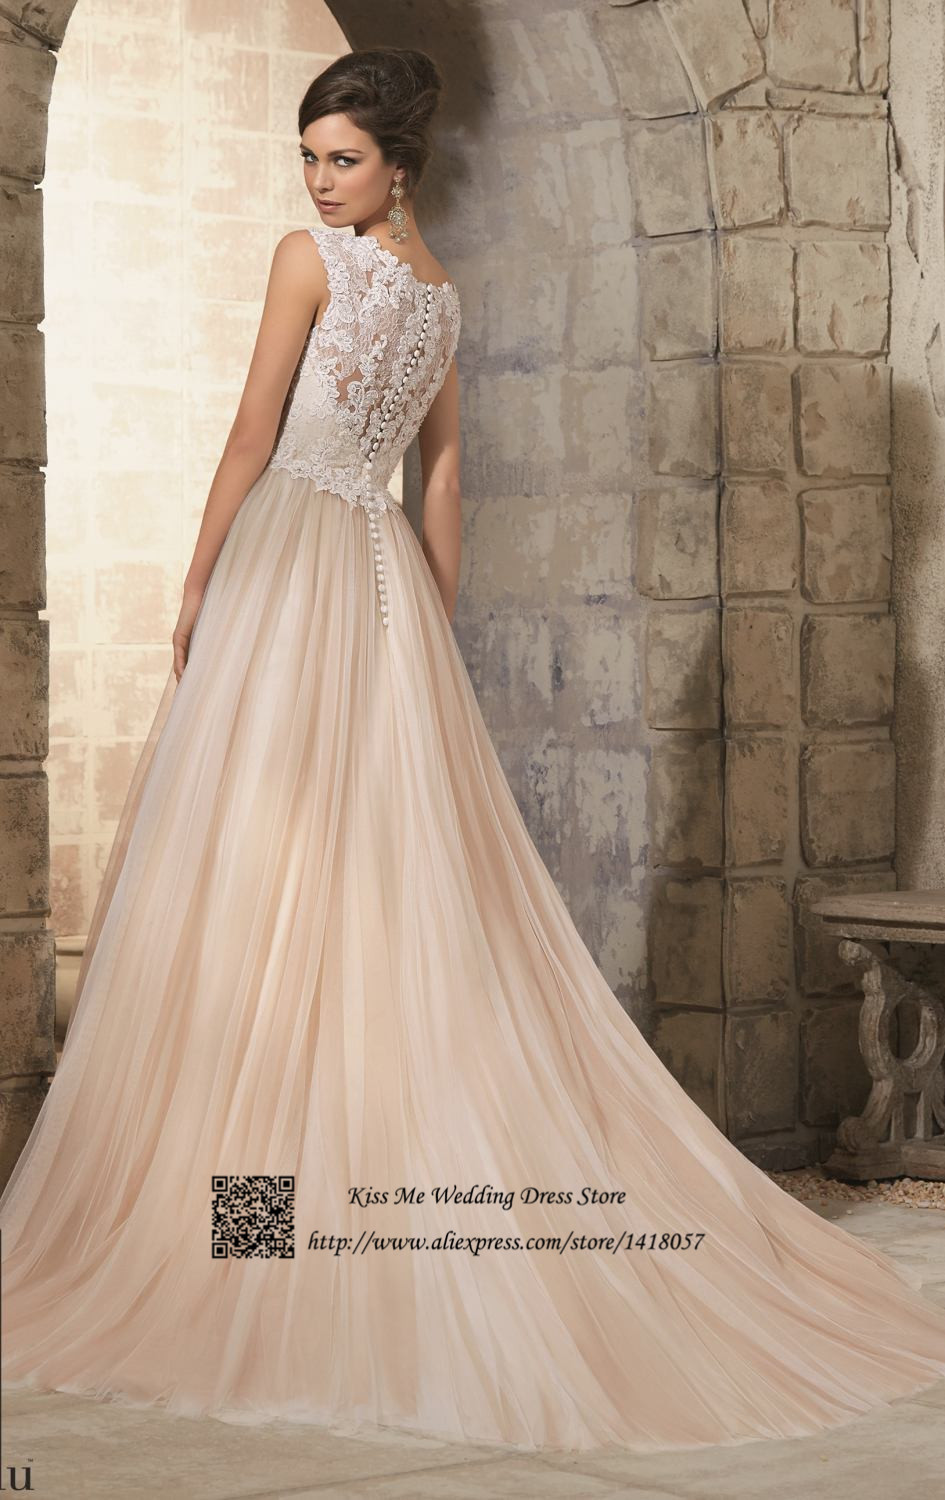 Luxury Wedding Dresses For Young Champagne Bridesmaid Dresses Sale